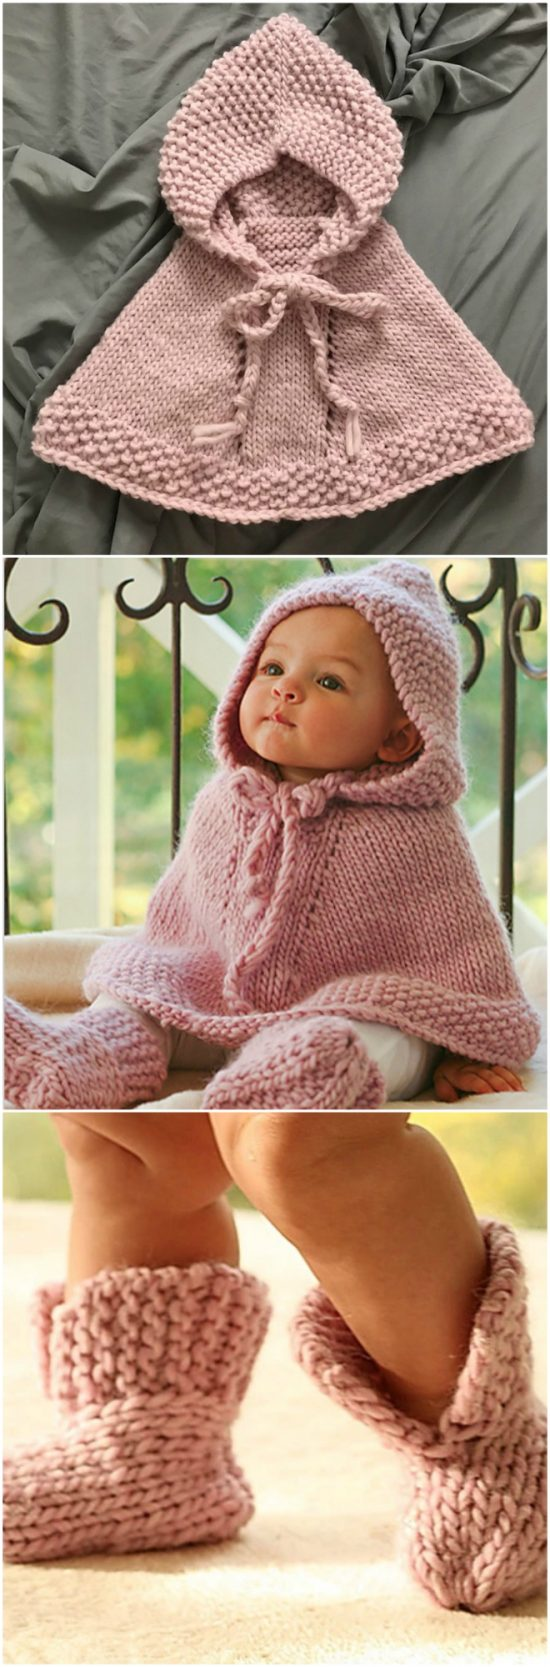 Knitted Hooded Baby Poncho Pattern Free The Whoot